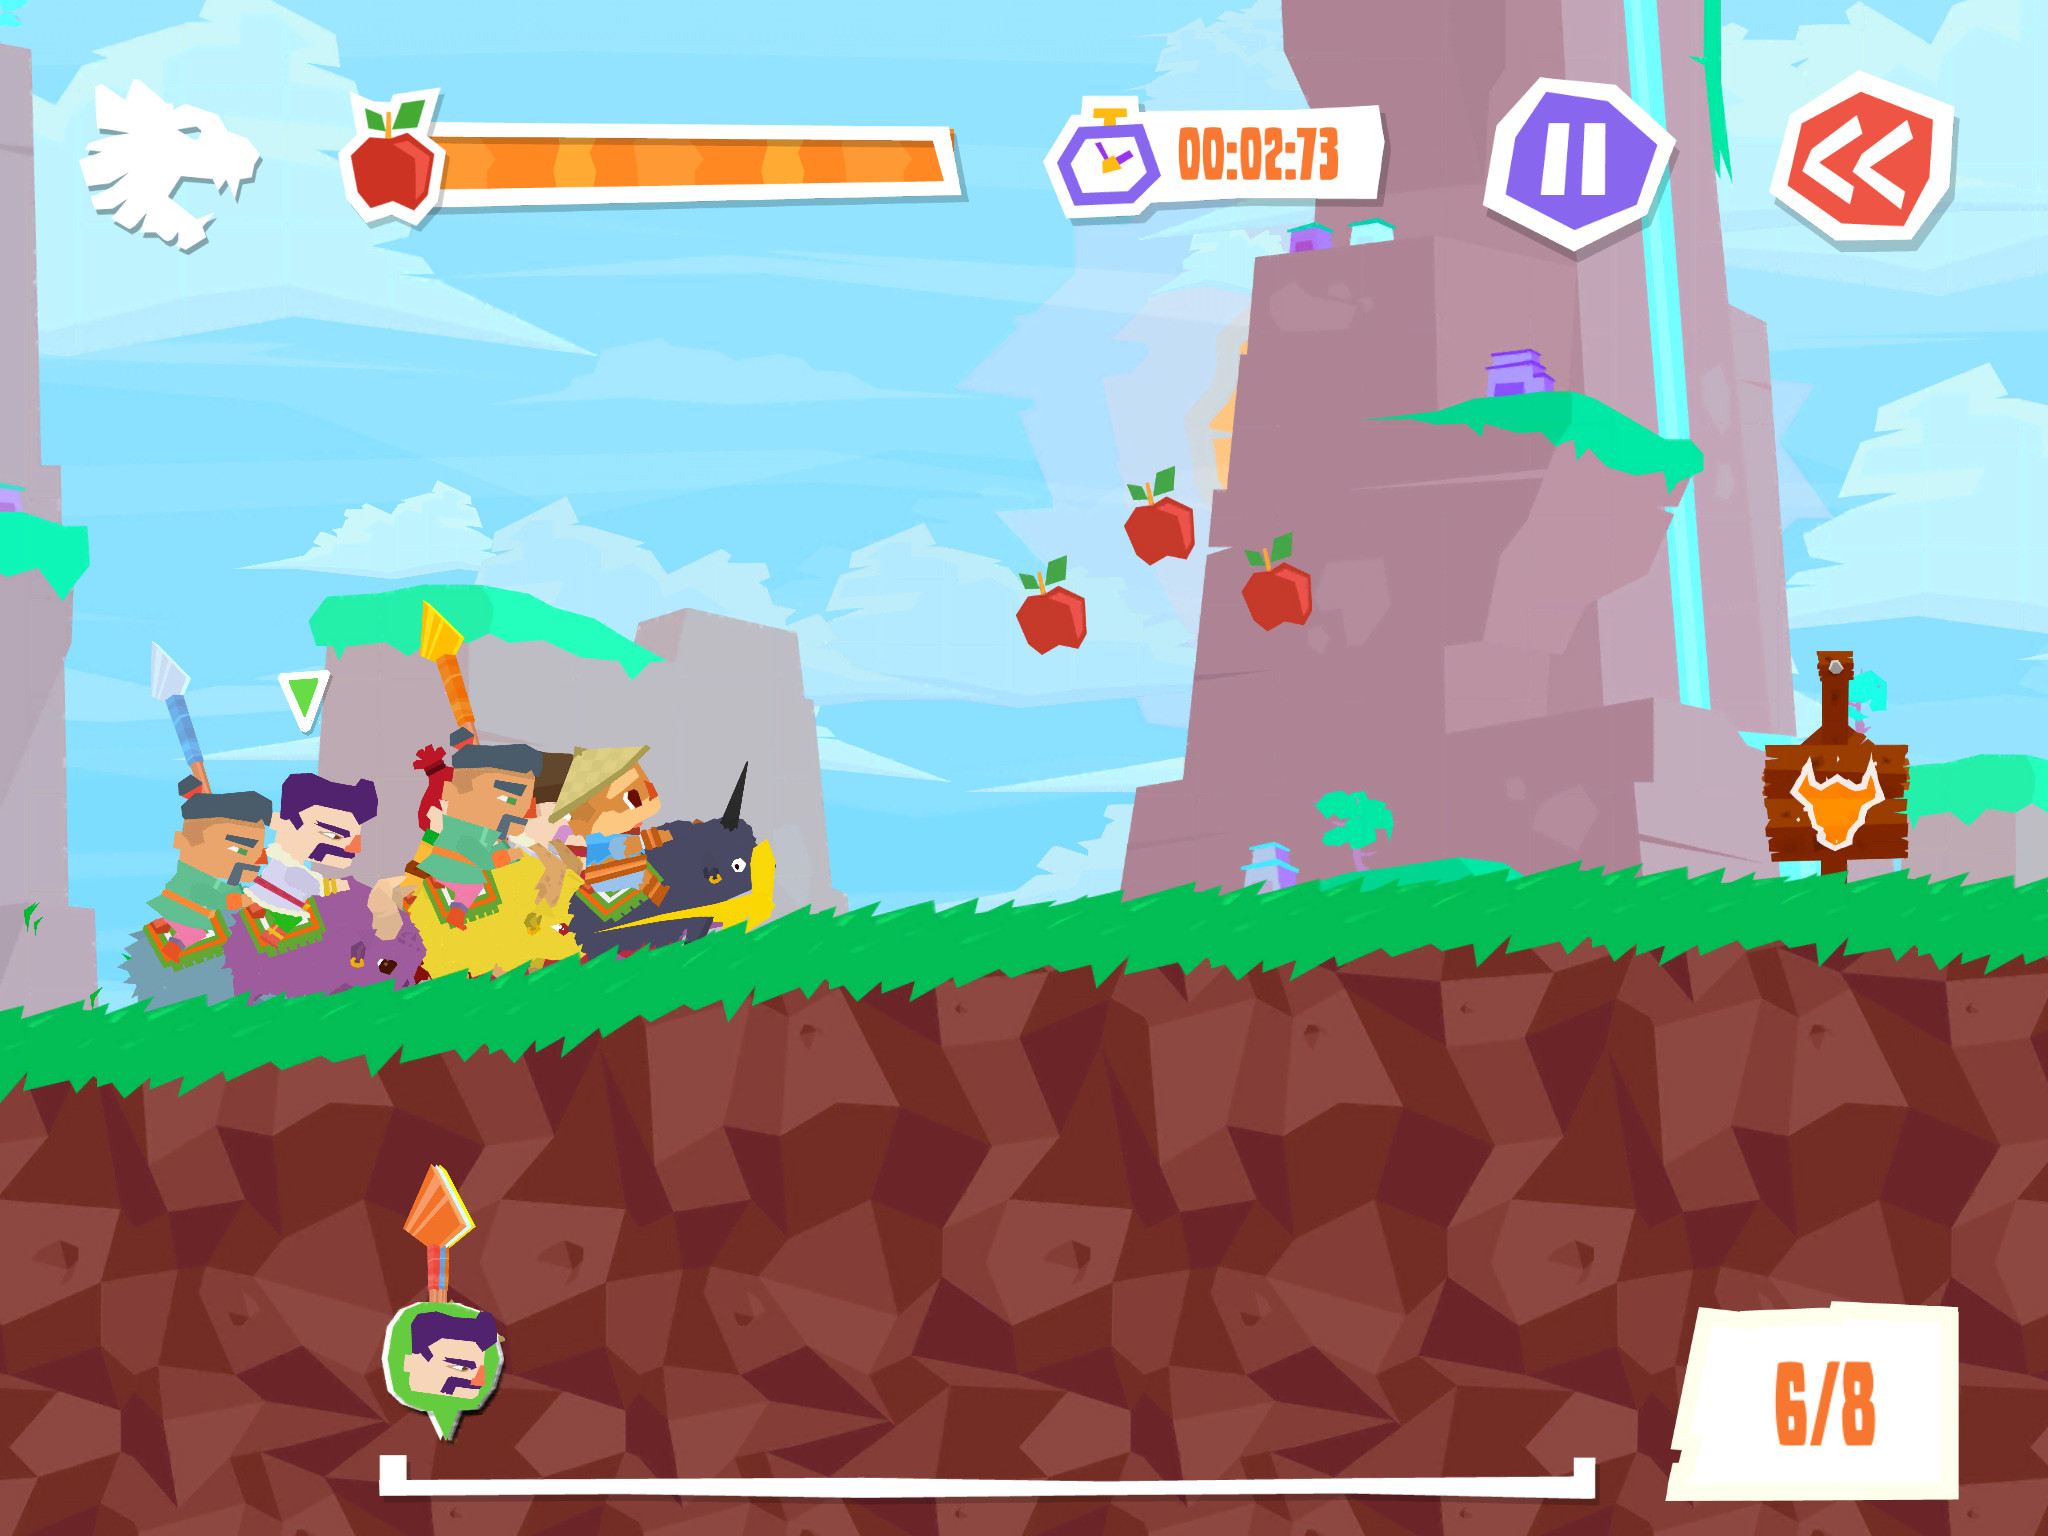 2D side-scroller Yak Dash: Horns of Glory is now racing onto Android